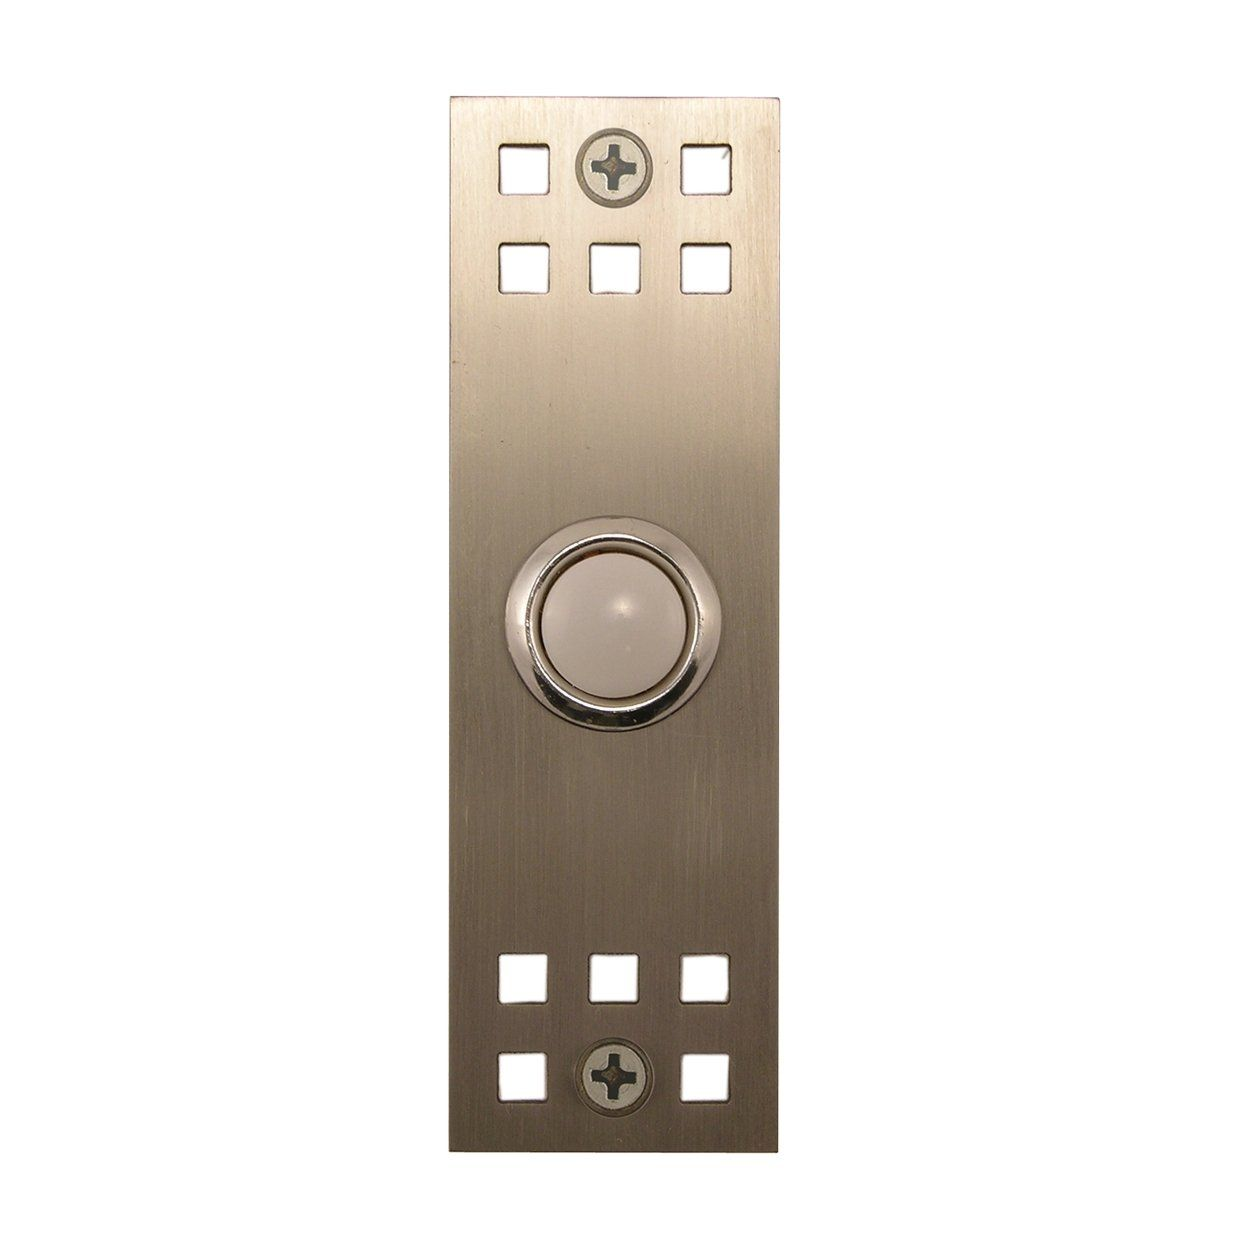 Waterwood Hardware 168 Craftsman Cover Doorbell Button Brushed Stainless Steel - Knobs and Hardware  sc 1 st  Pinterest & Waterwood Hardware 168 Craftsman Cover Doorbell Button Brushed ...